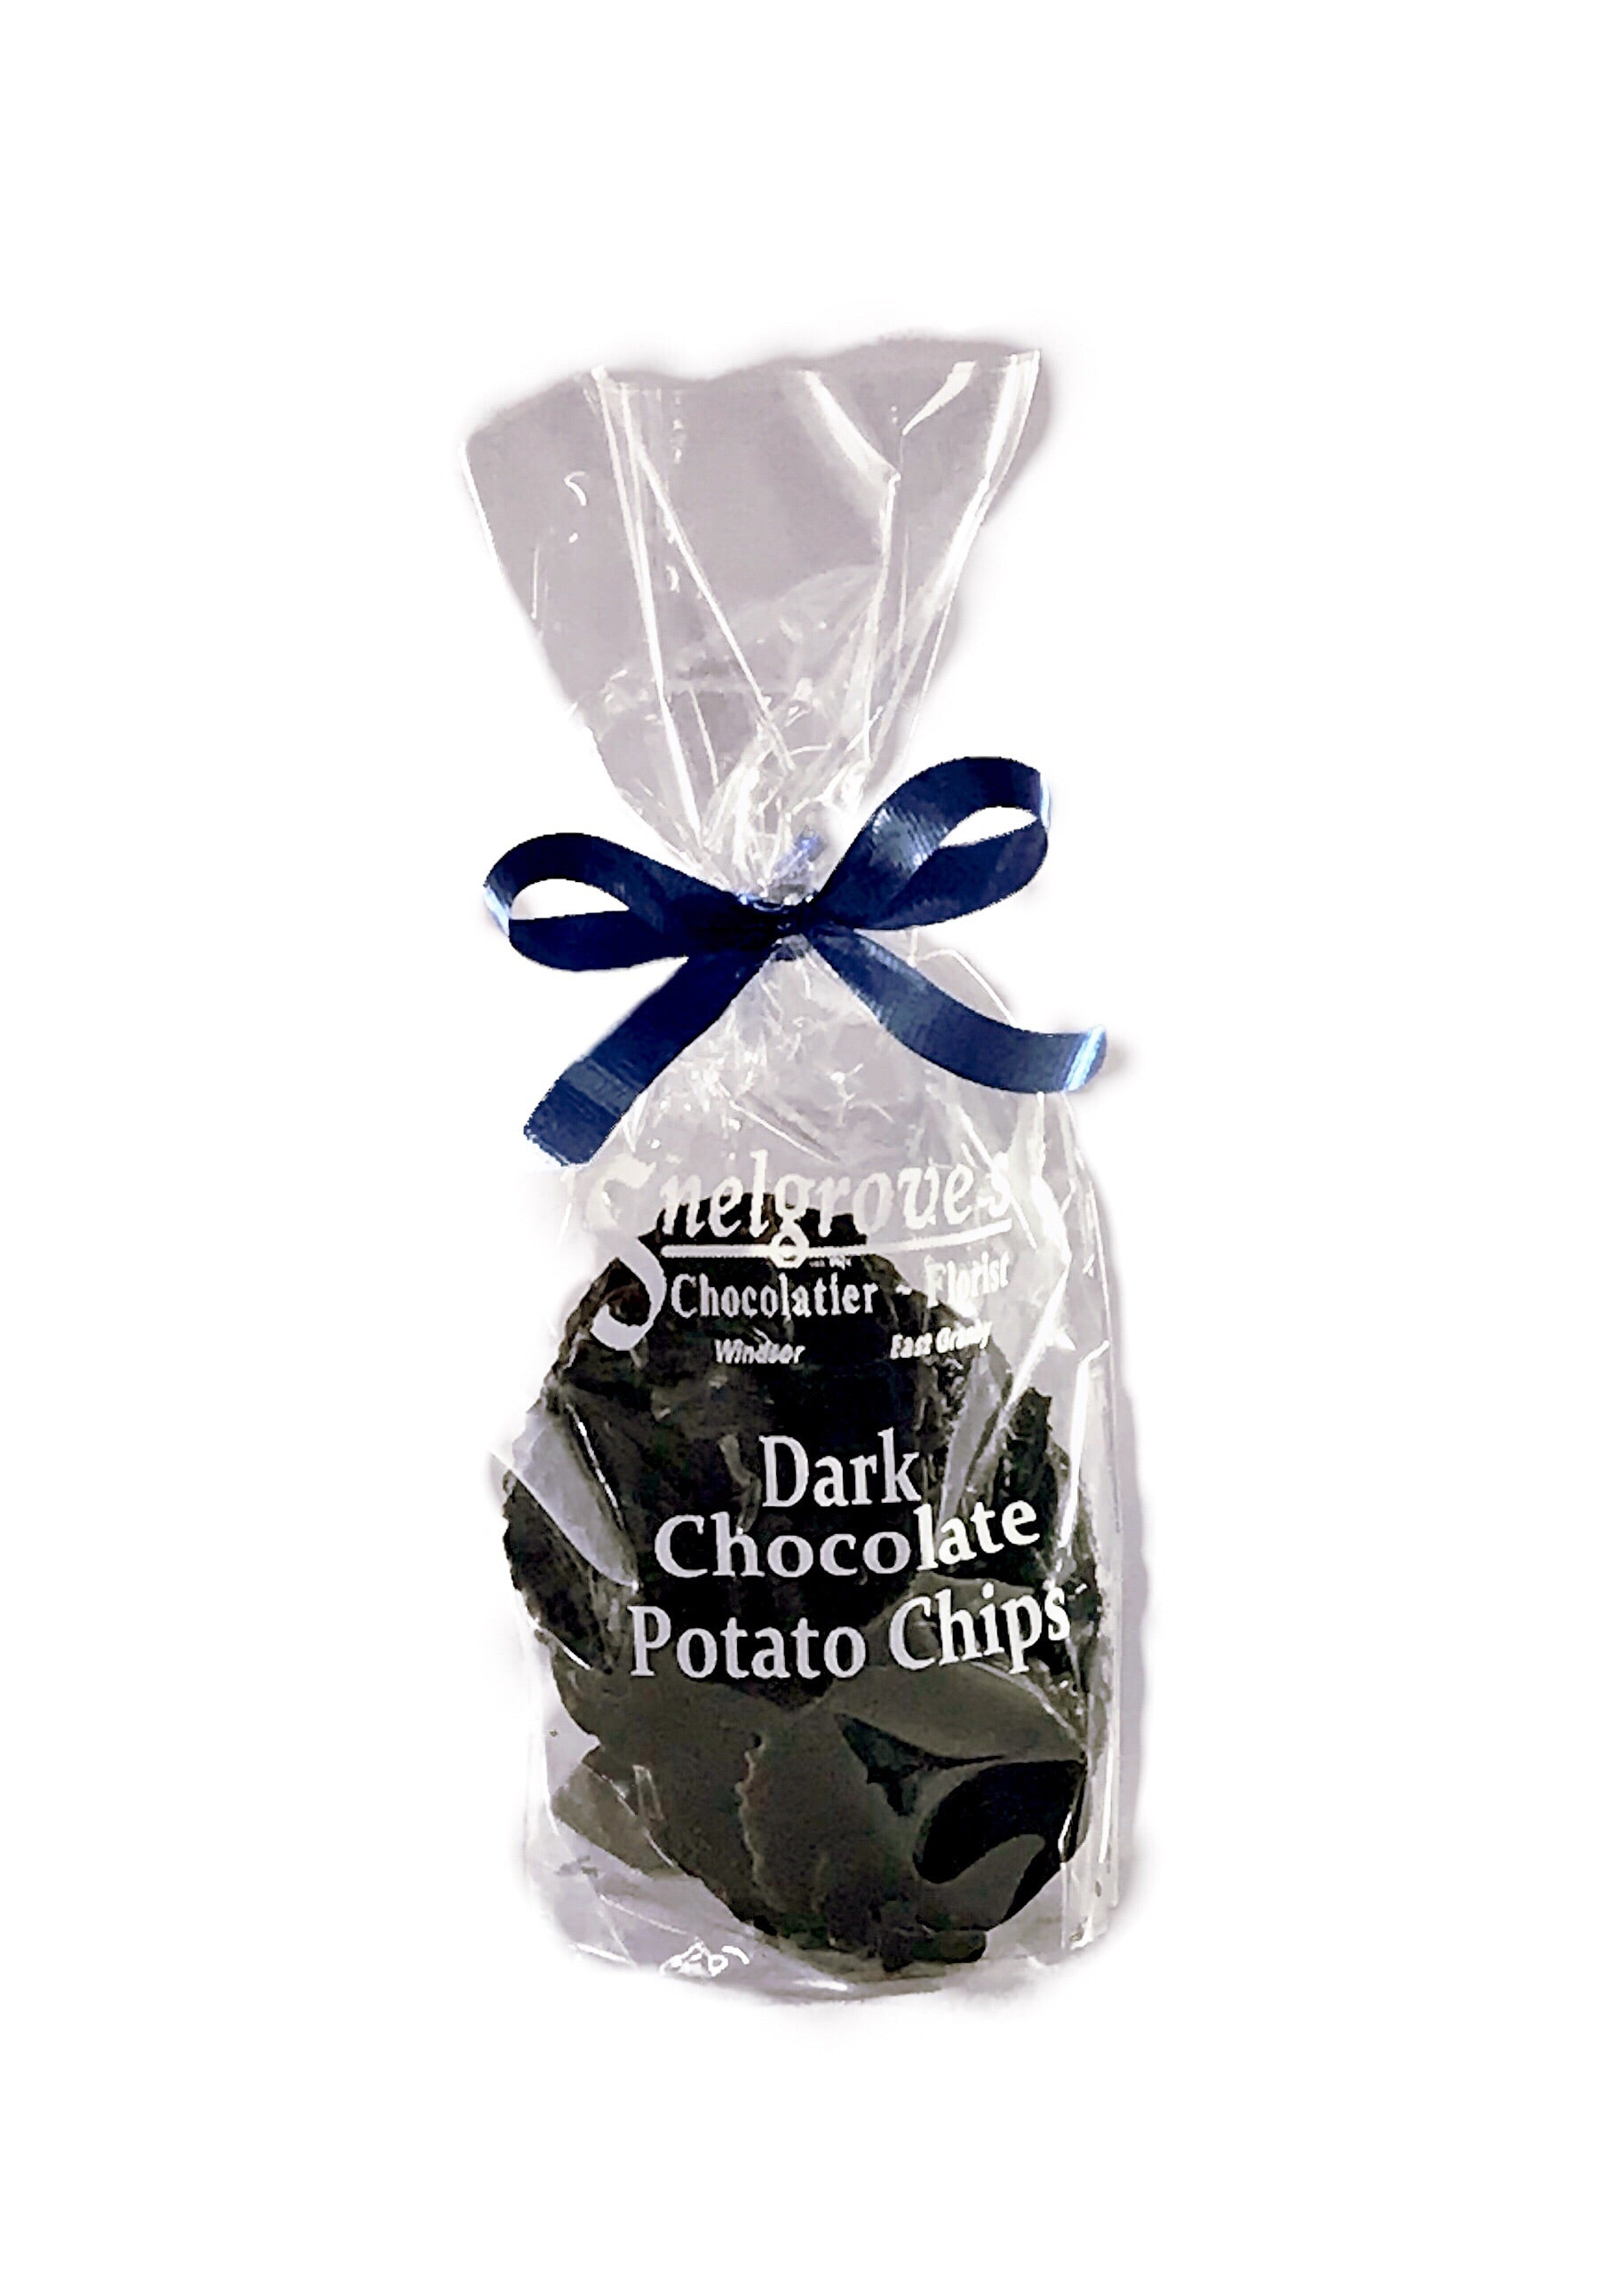 Bagged Dark Chocolate Covered Potato Chips